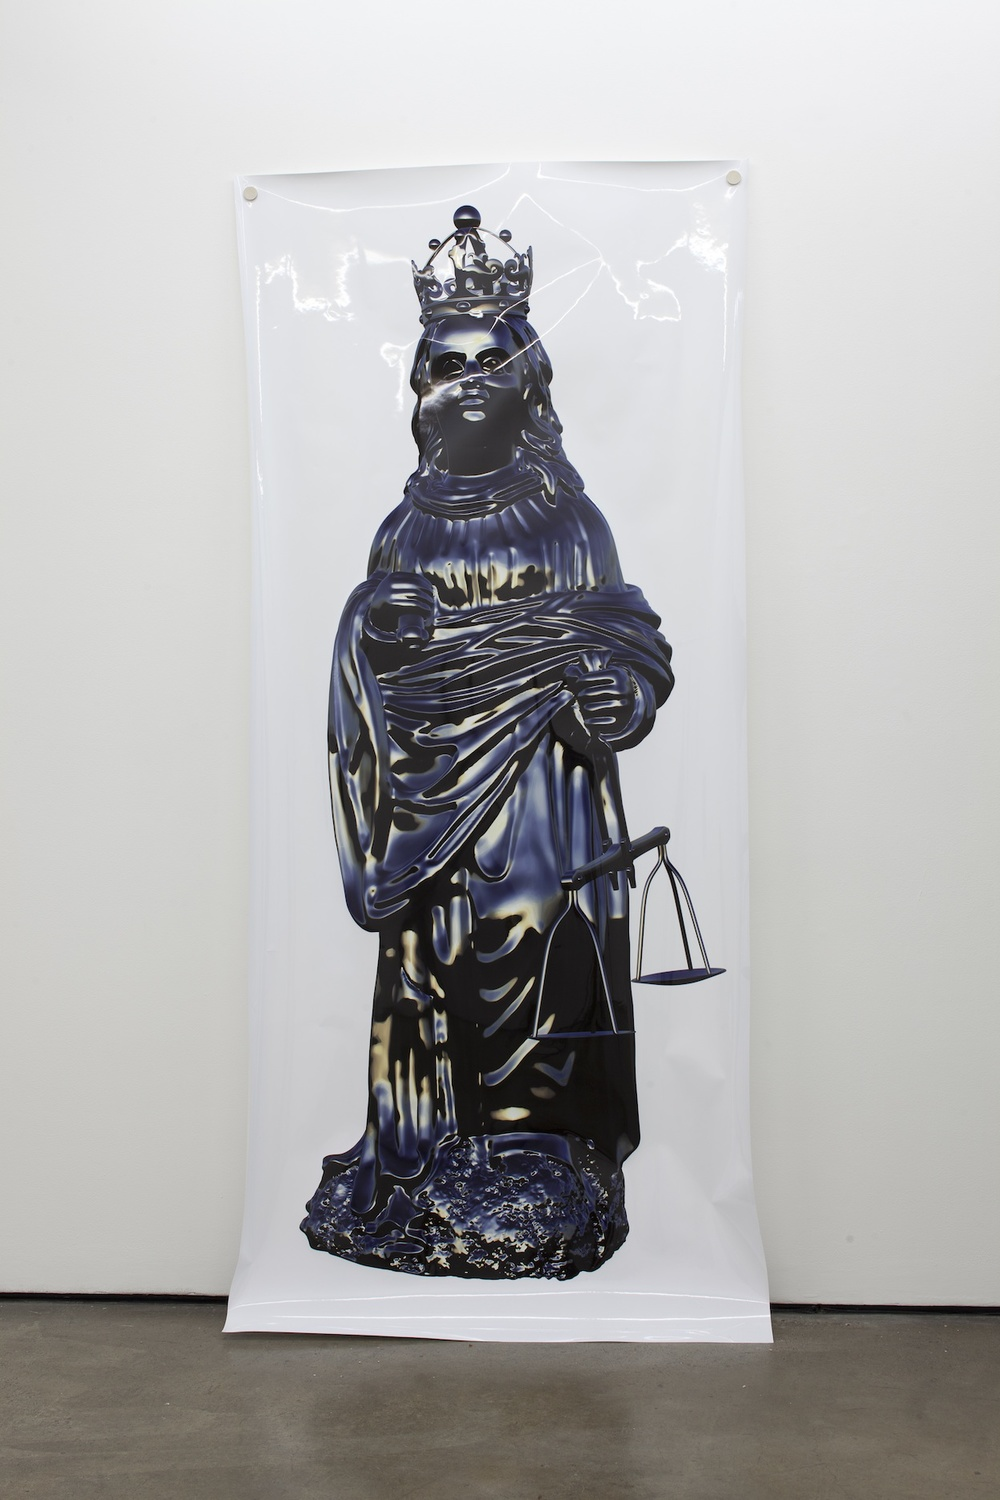 Oliver Laric Maria Justitia 2011 Clear coated fine art inkjet print on ultra glossy paper 250 x 110 cm